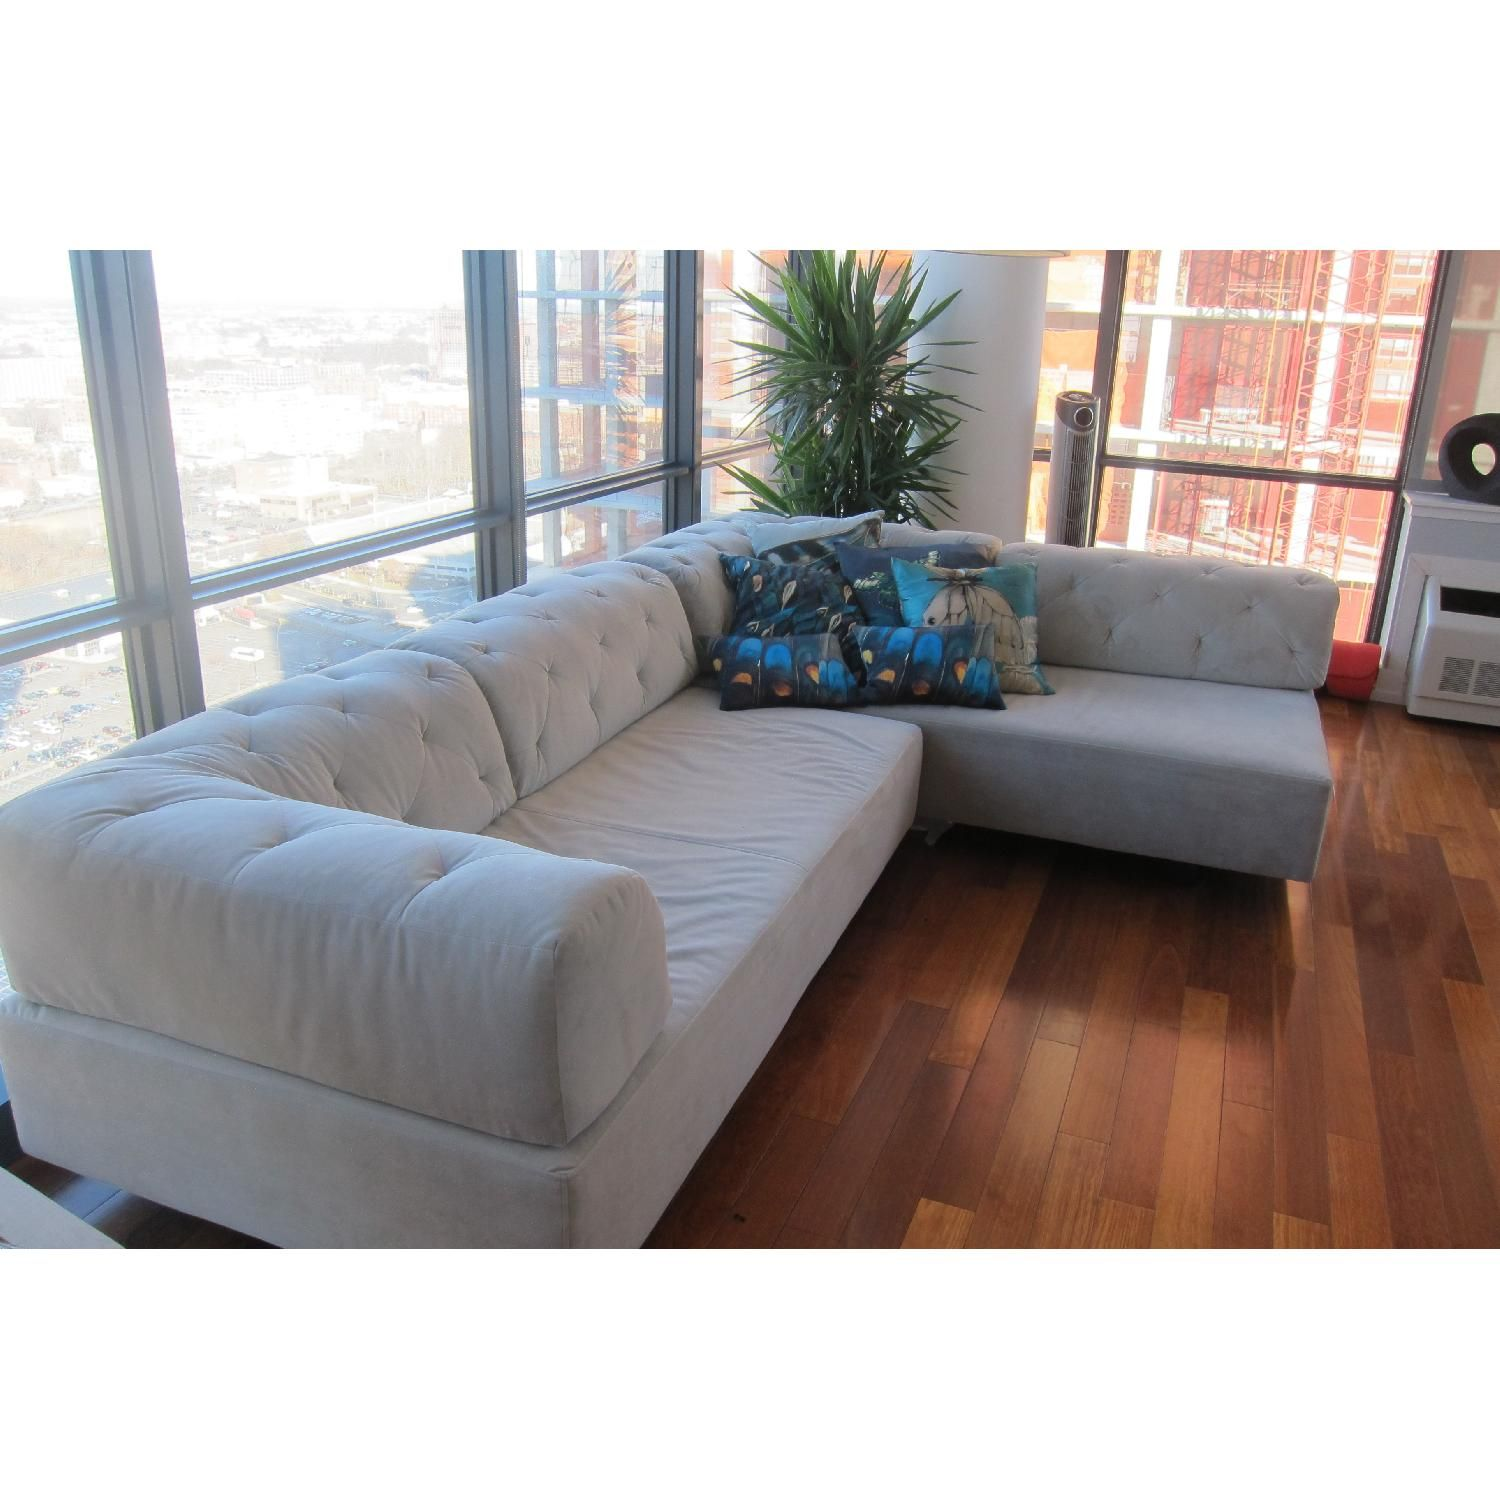 Macys Sofa Pillows 10 Best Beds Sofas At Braylei 2 Pc Sectional With Chaise Toss